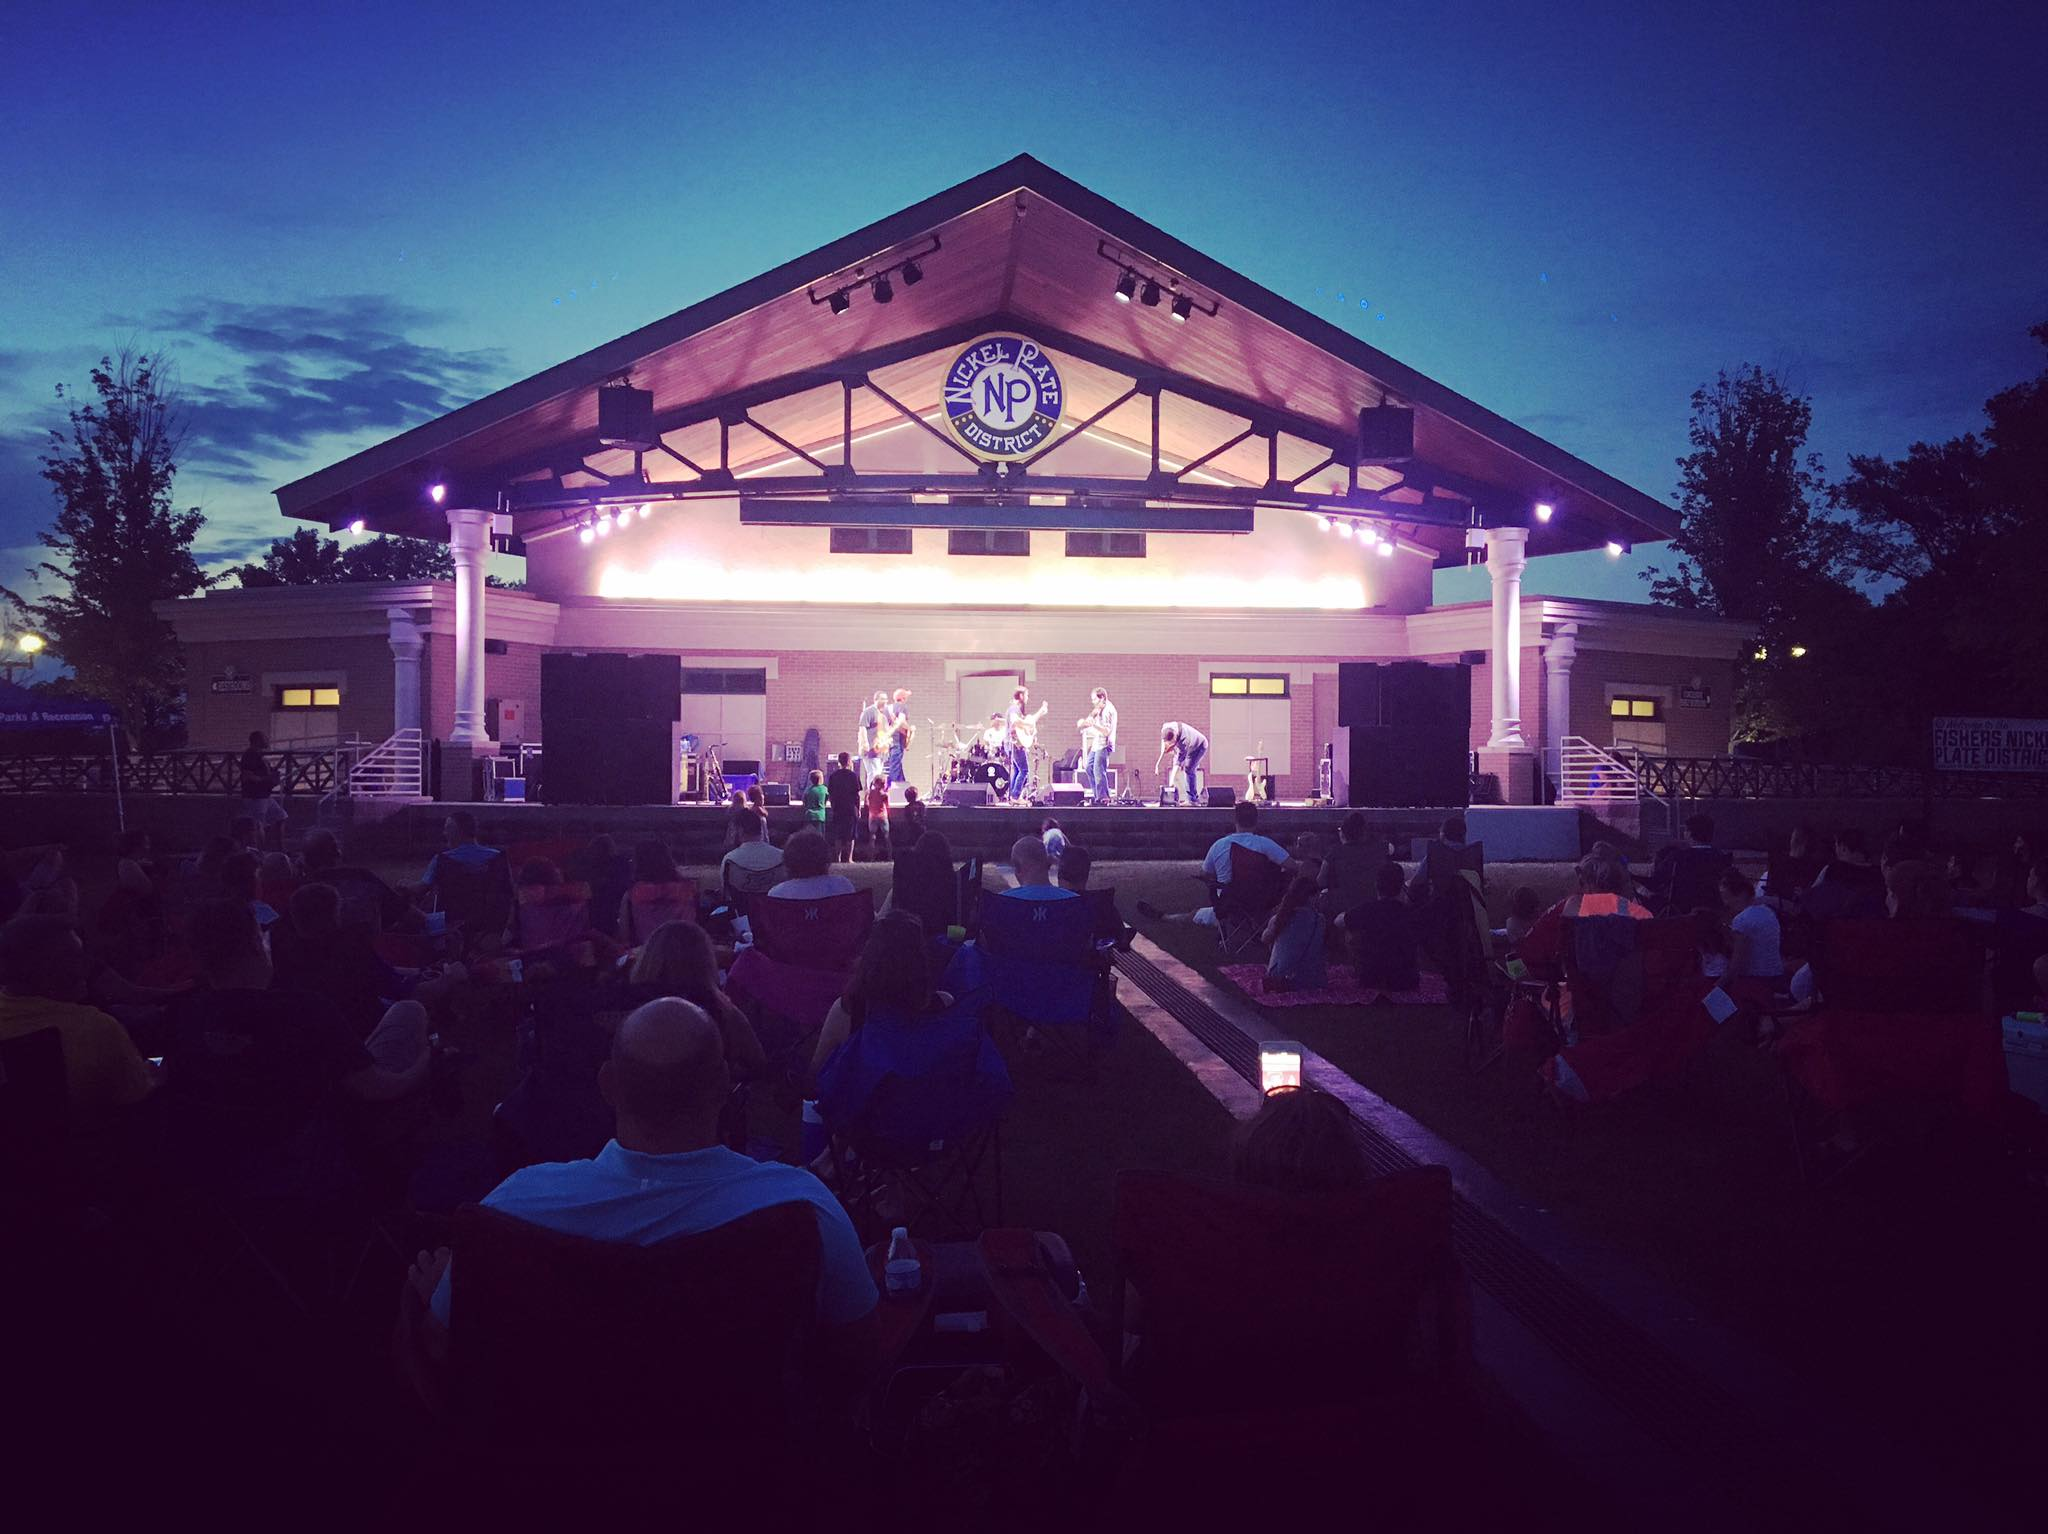 Nickel Plate Amphitheater at Night During a Concert